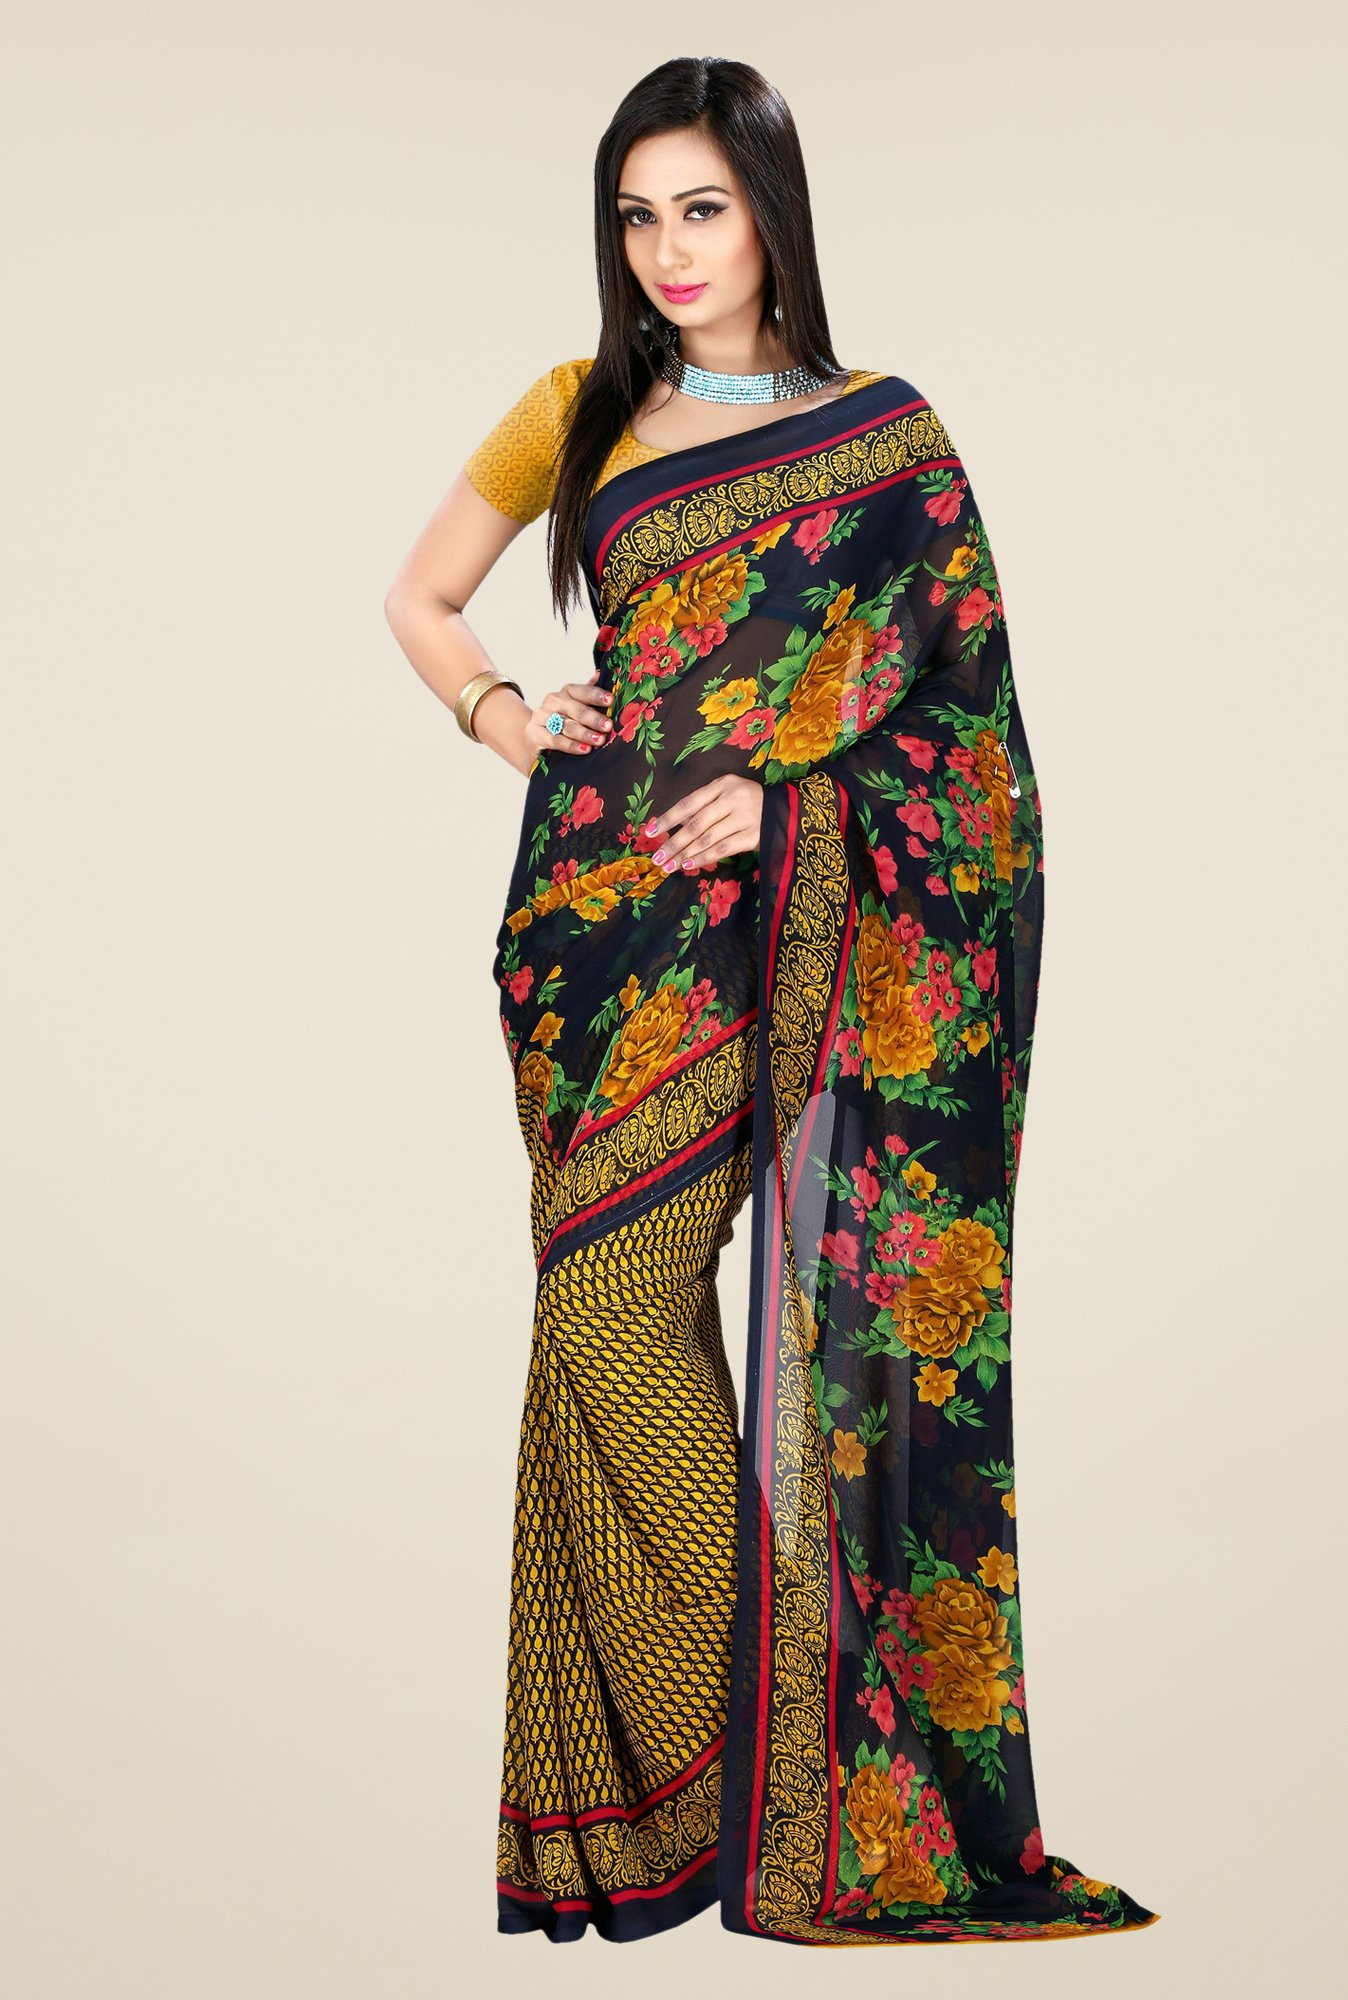 Shonaya Black & Yellow Georgette Floral Print Saree